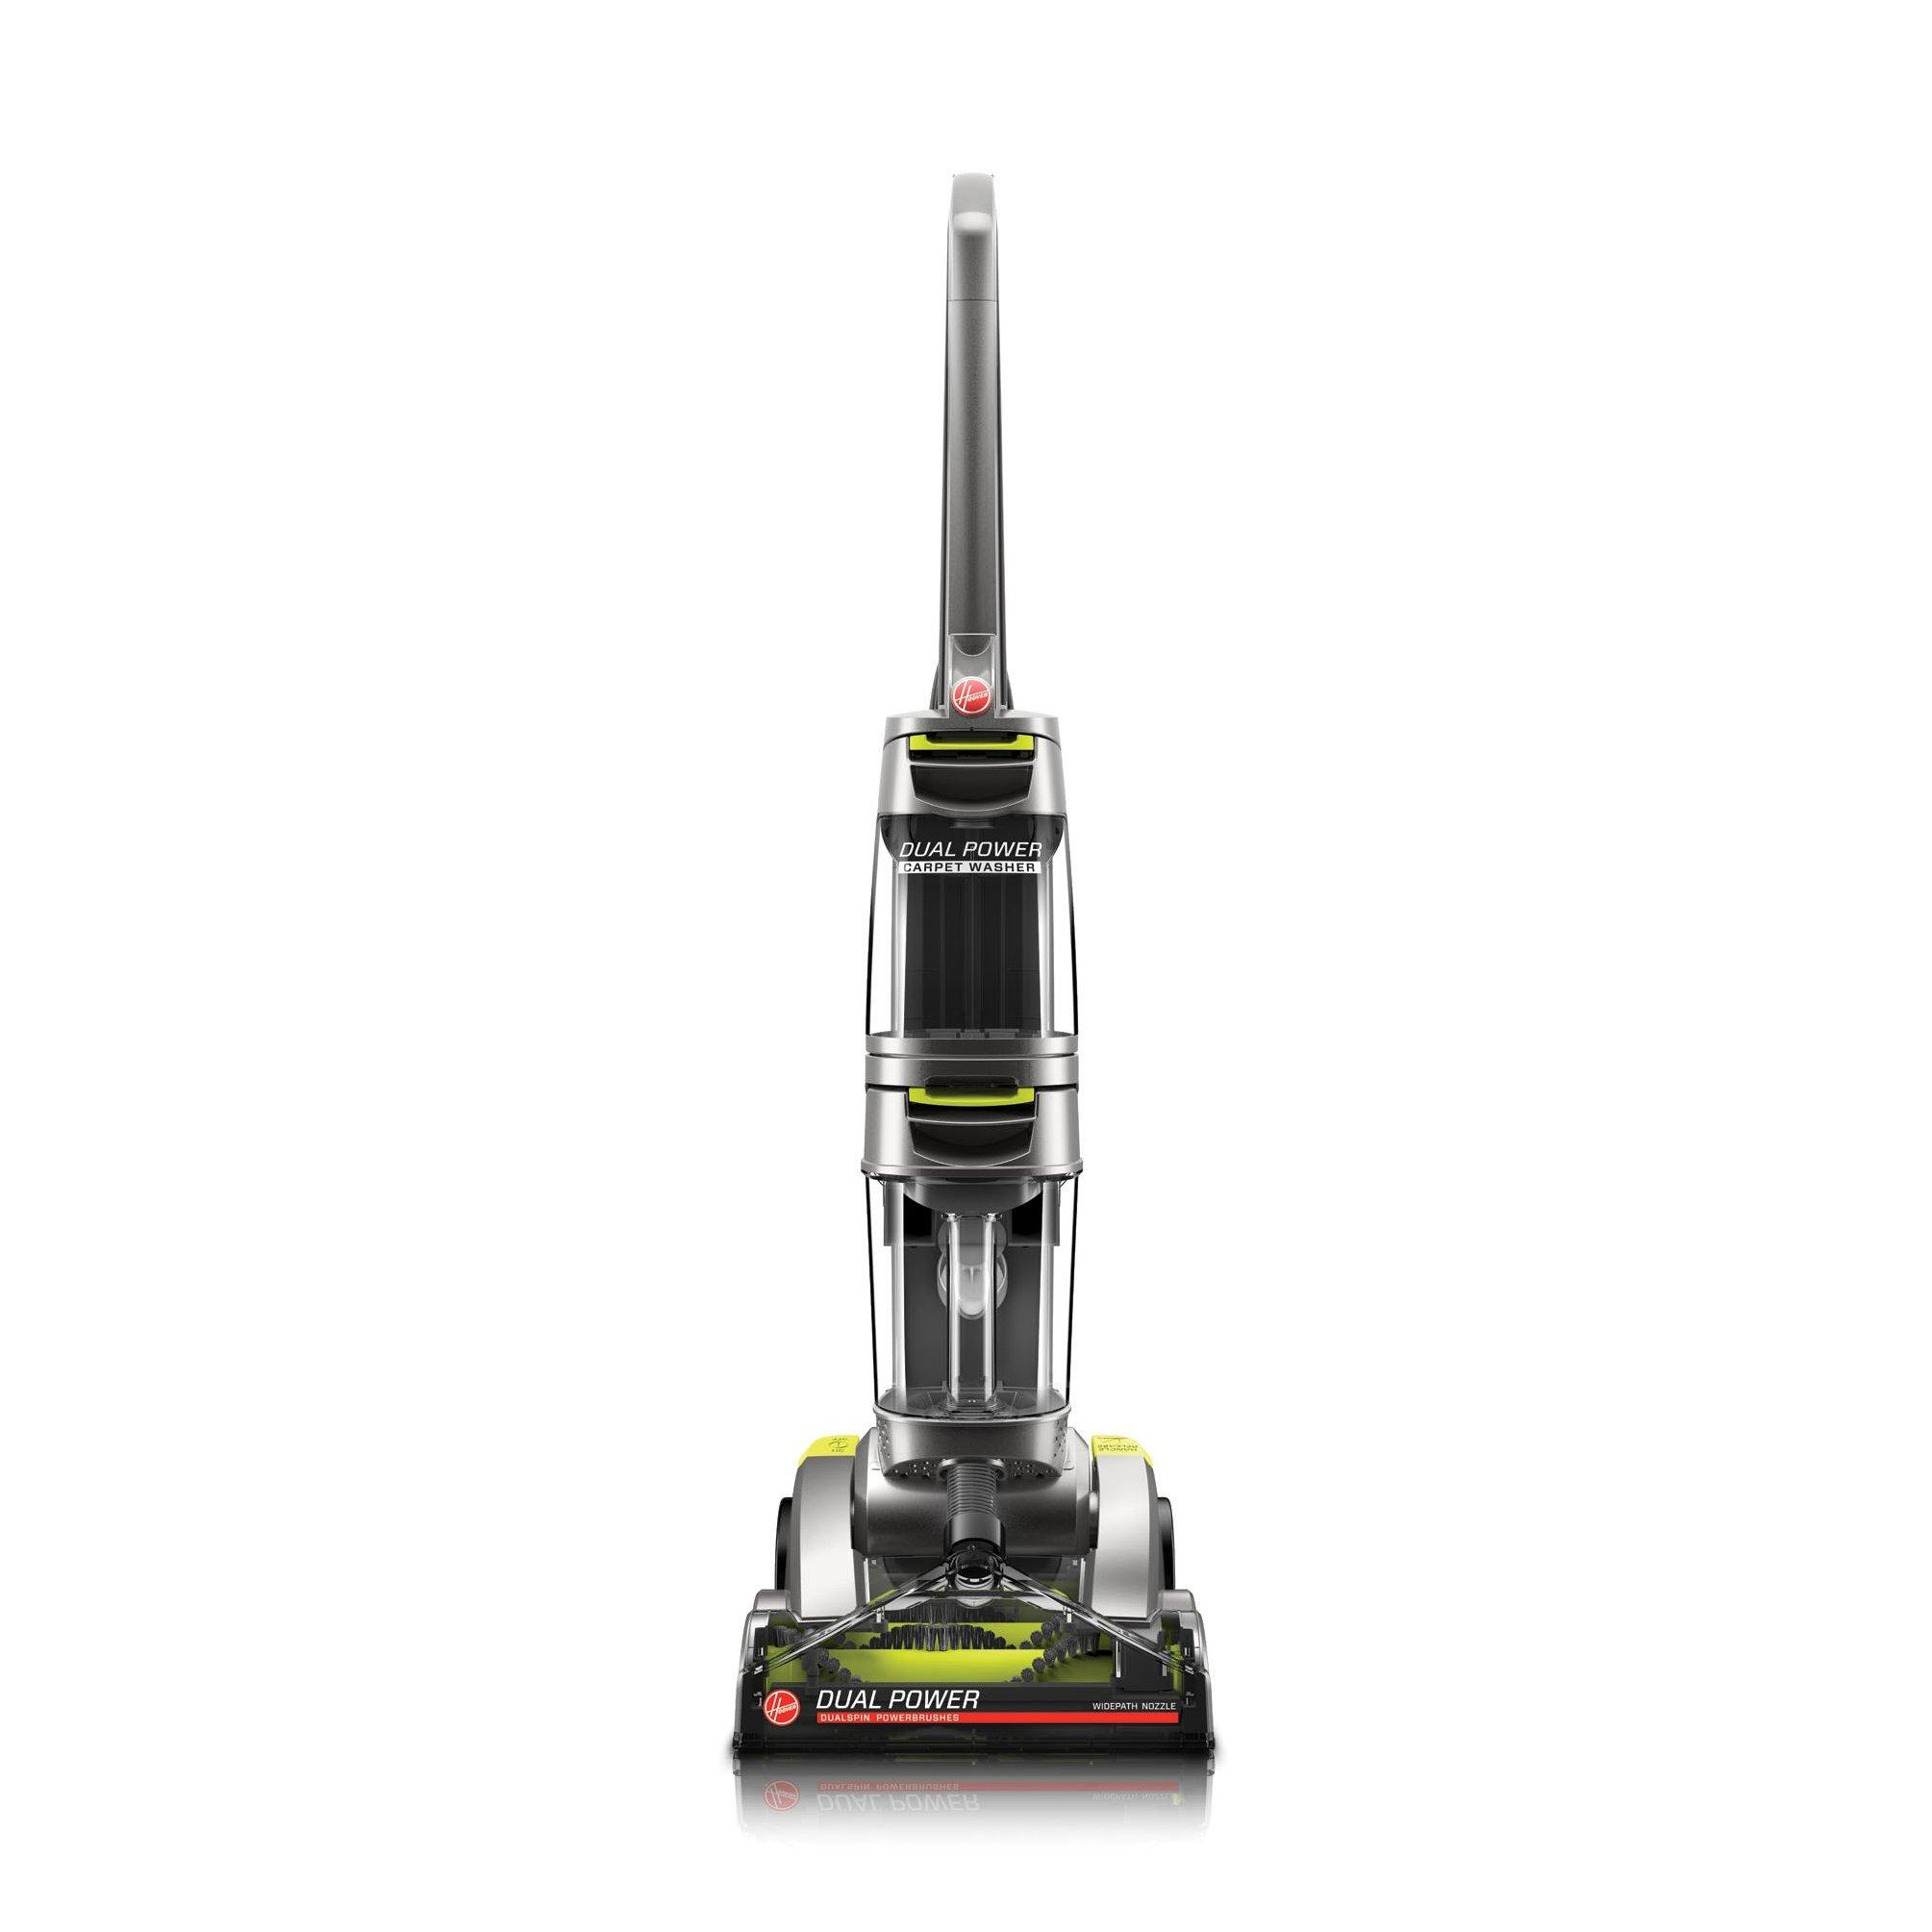 Reconditioned Dual Power Carpet Cleaner